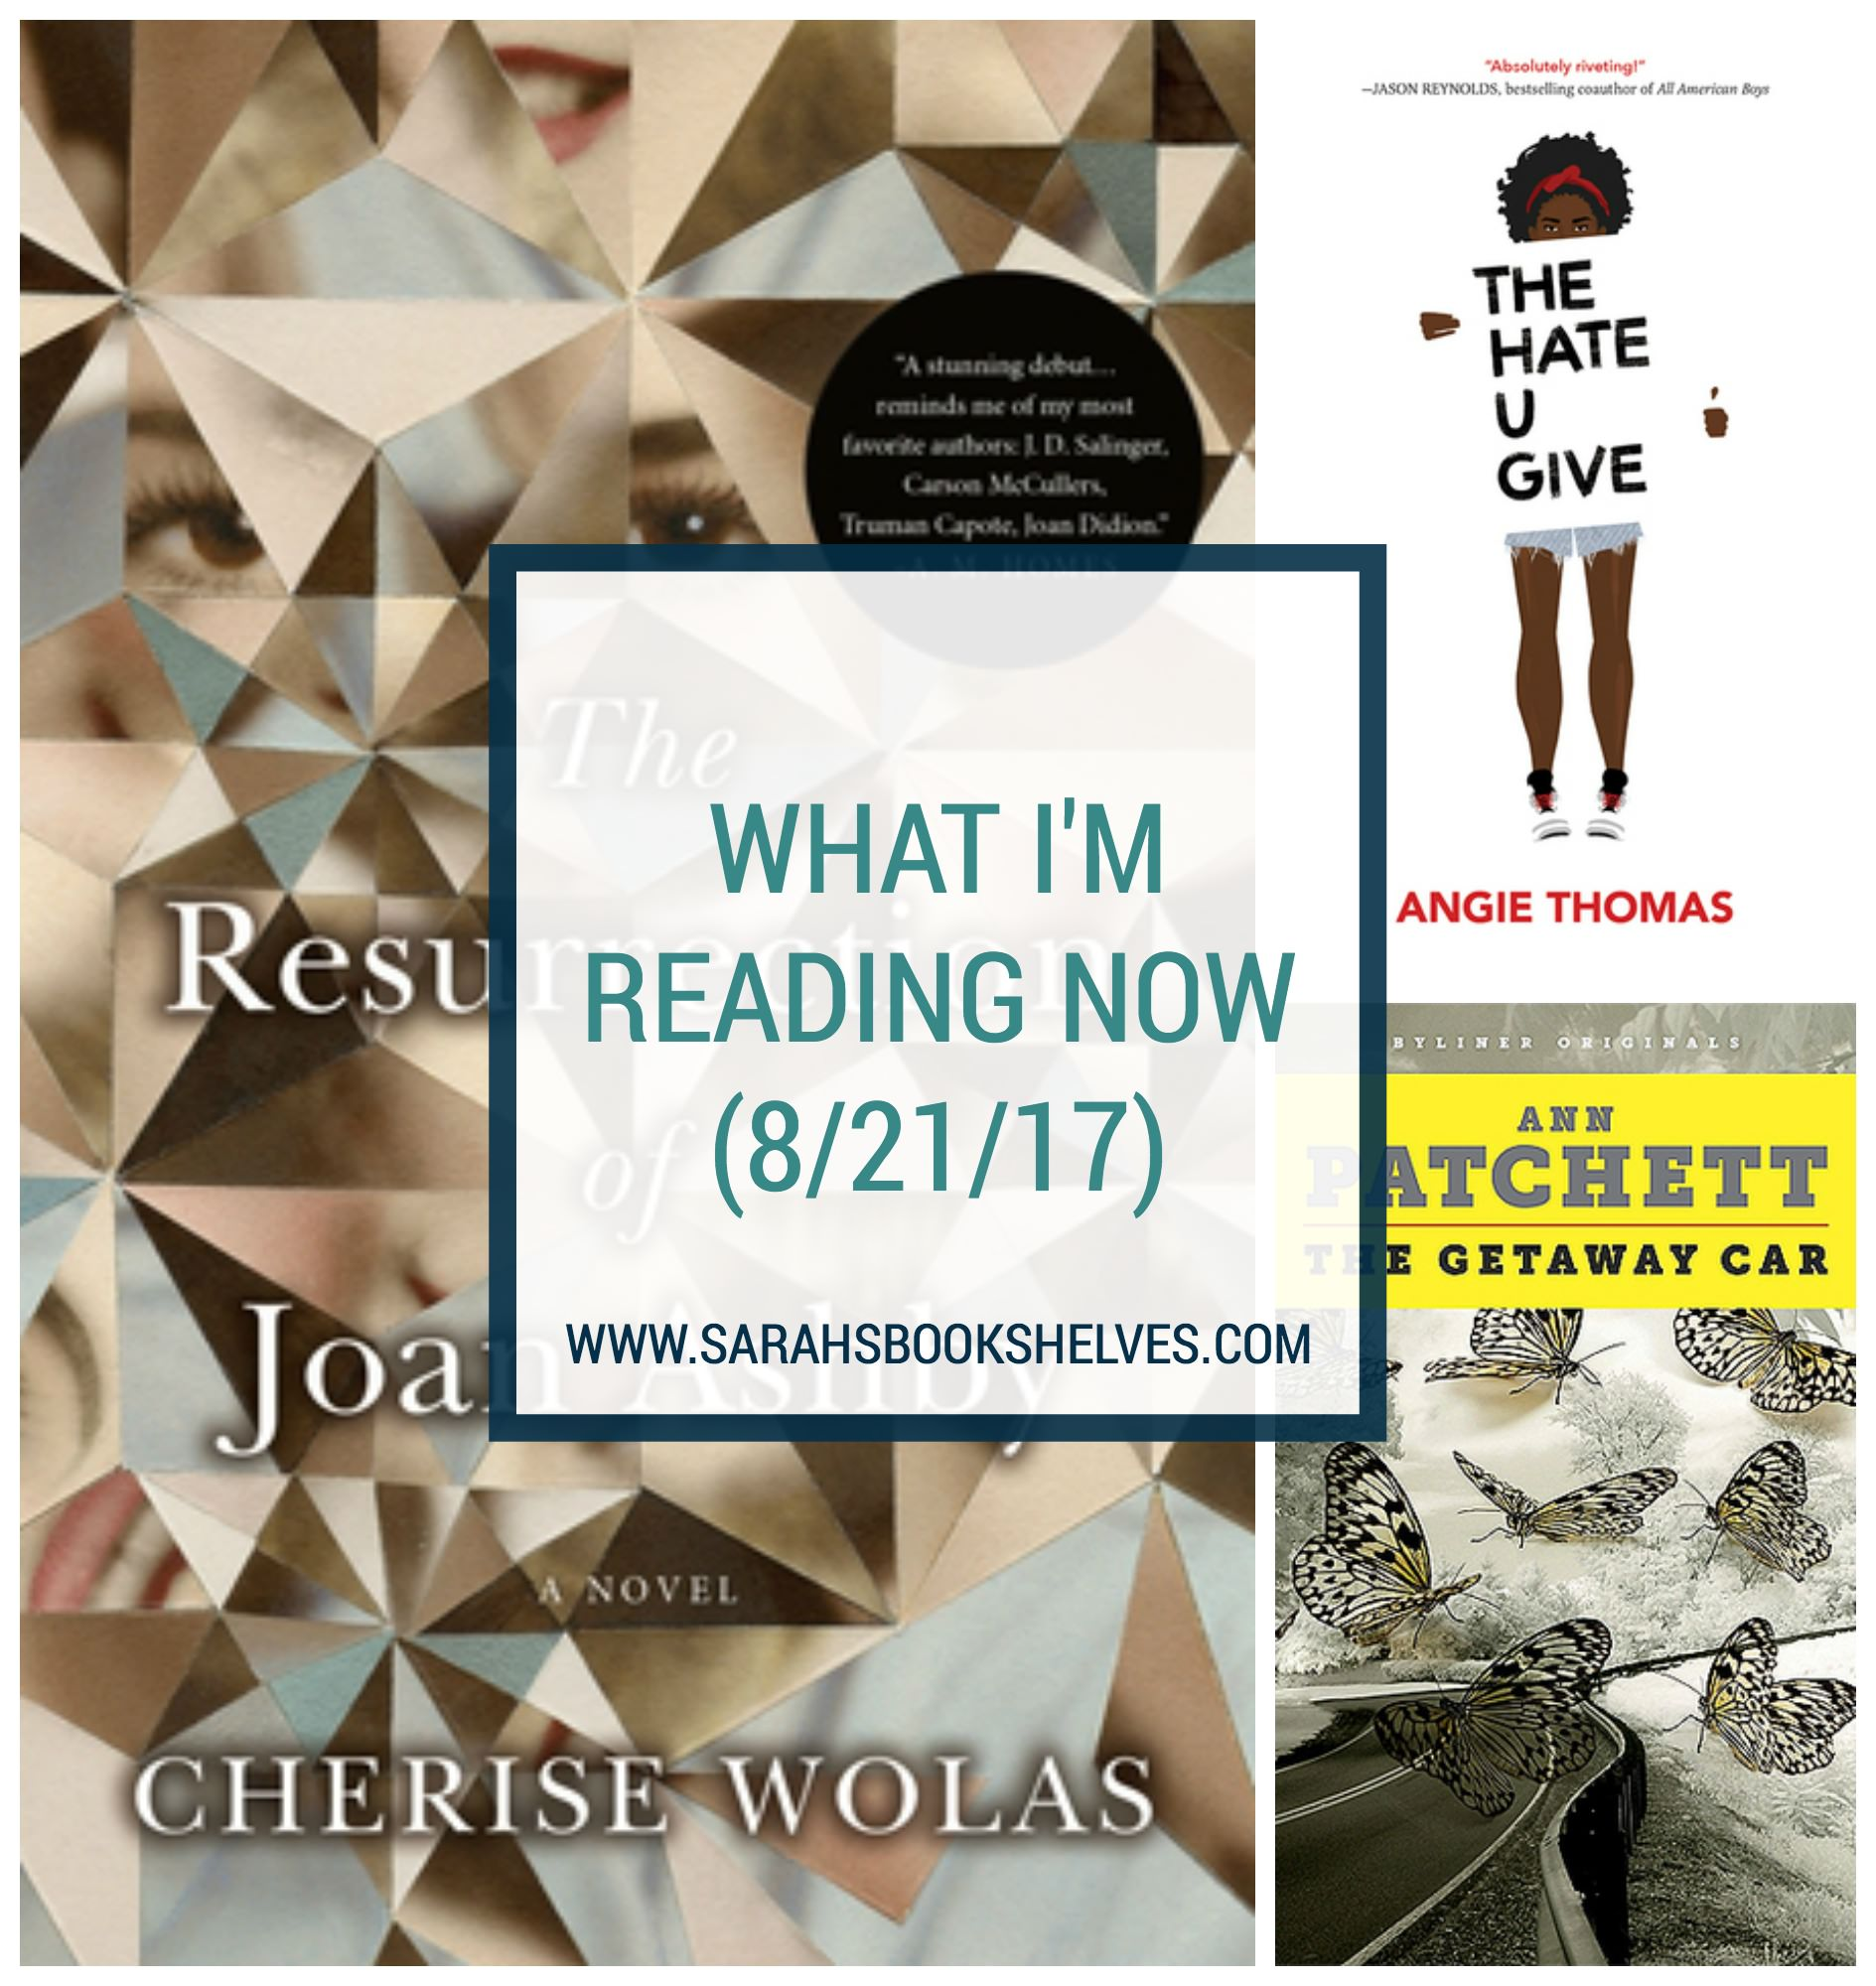 What I'm Reading Now (8/21/17): I've been delving into library books lately (The Hate U Give, South Pole Station) and am just starting an August 29 release (The Resurrection of Joan Ashby).